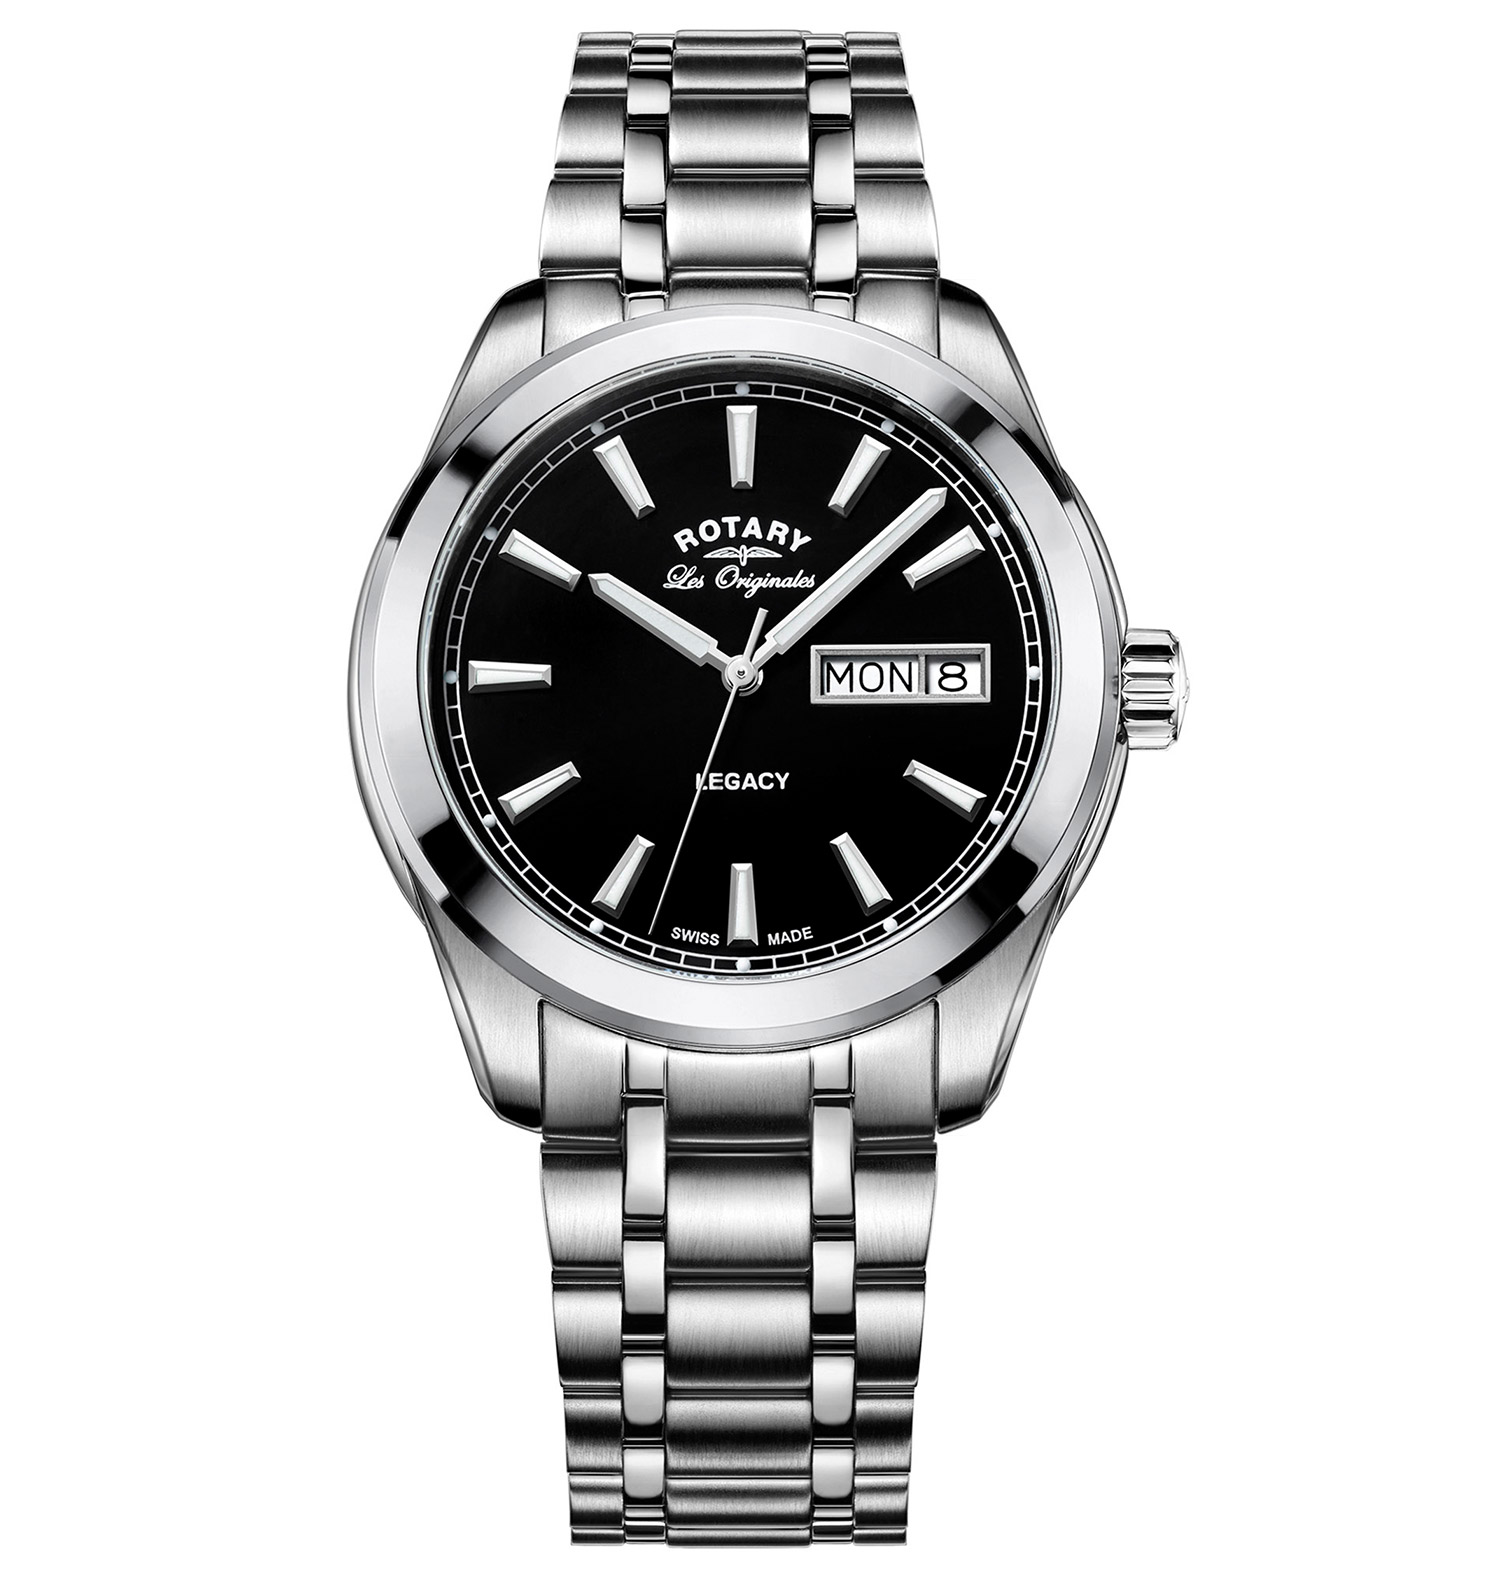 ROTARY LES ORIGINALES LEGACY STAINLESS STEEL SWISS GENTS QUARTZ WATCH